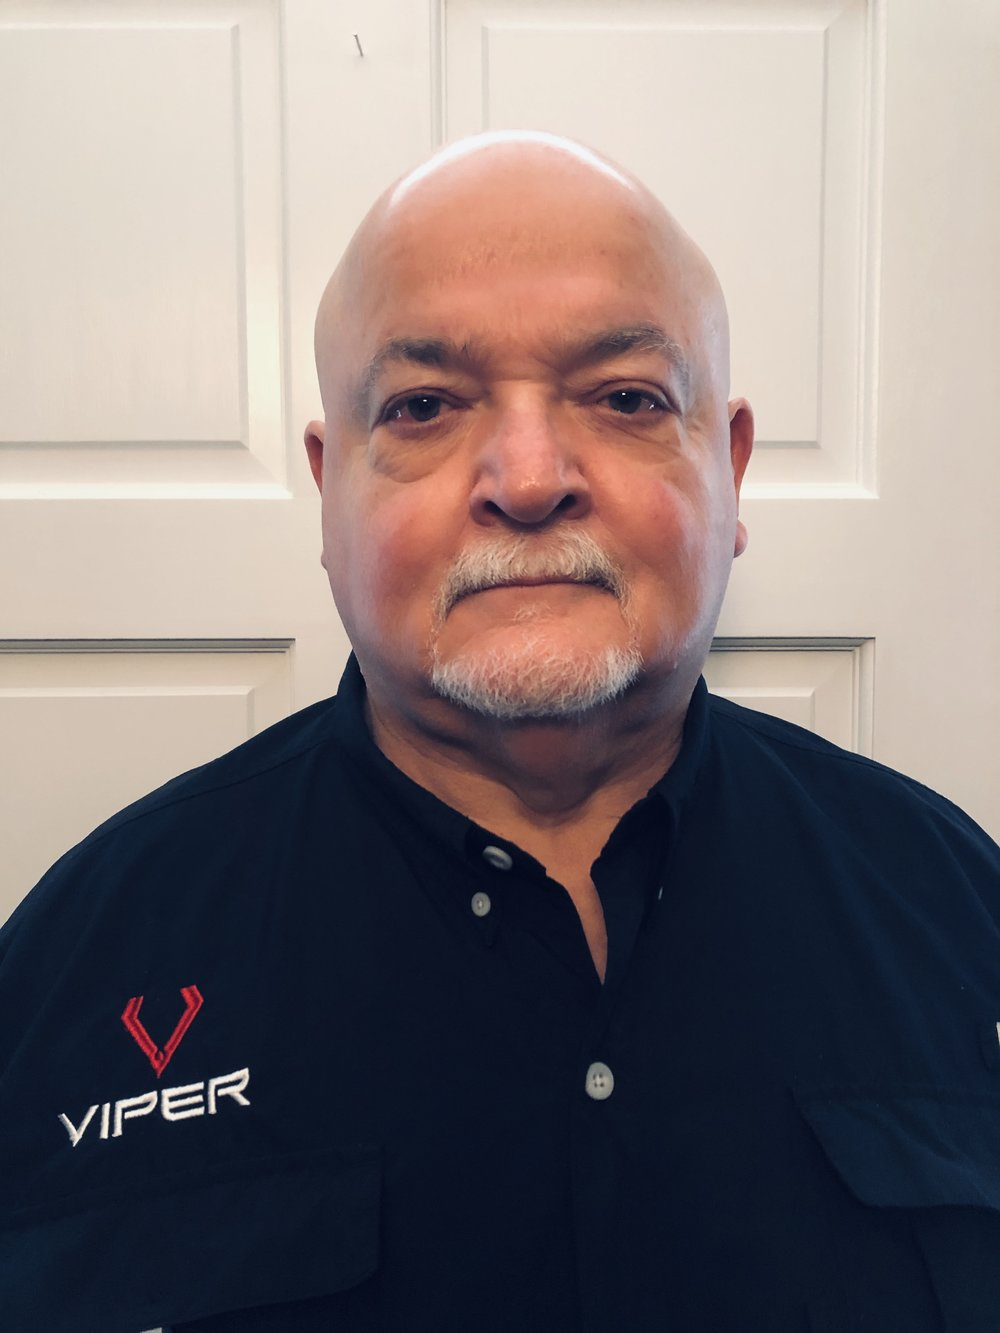 Jimmie Rodrigue, Viper Regional Sales Manager